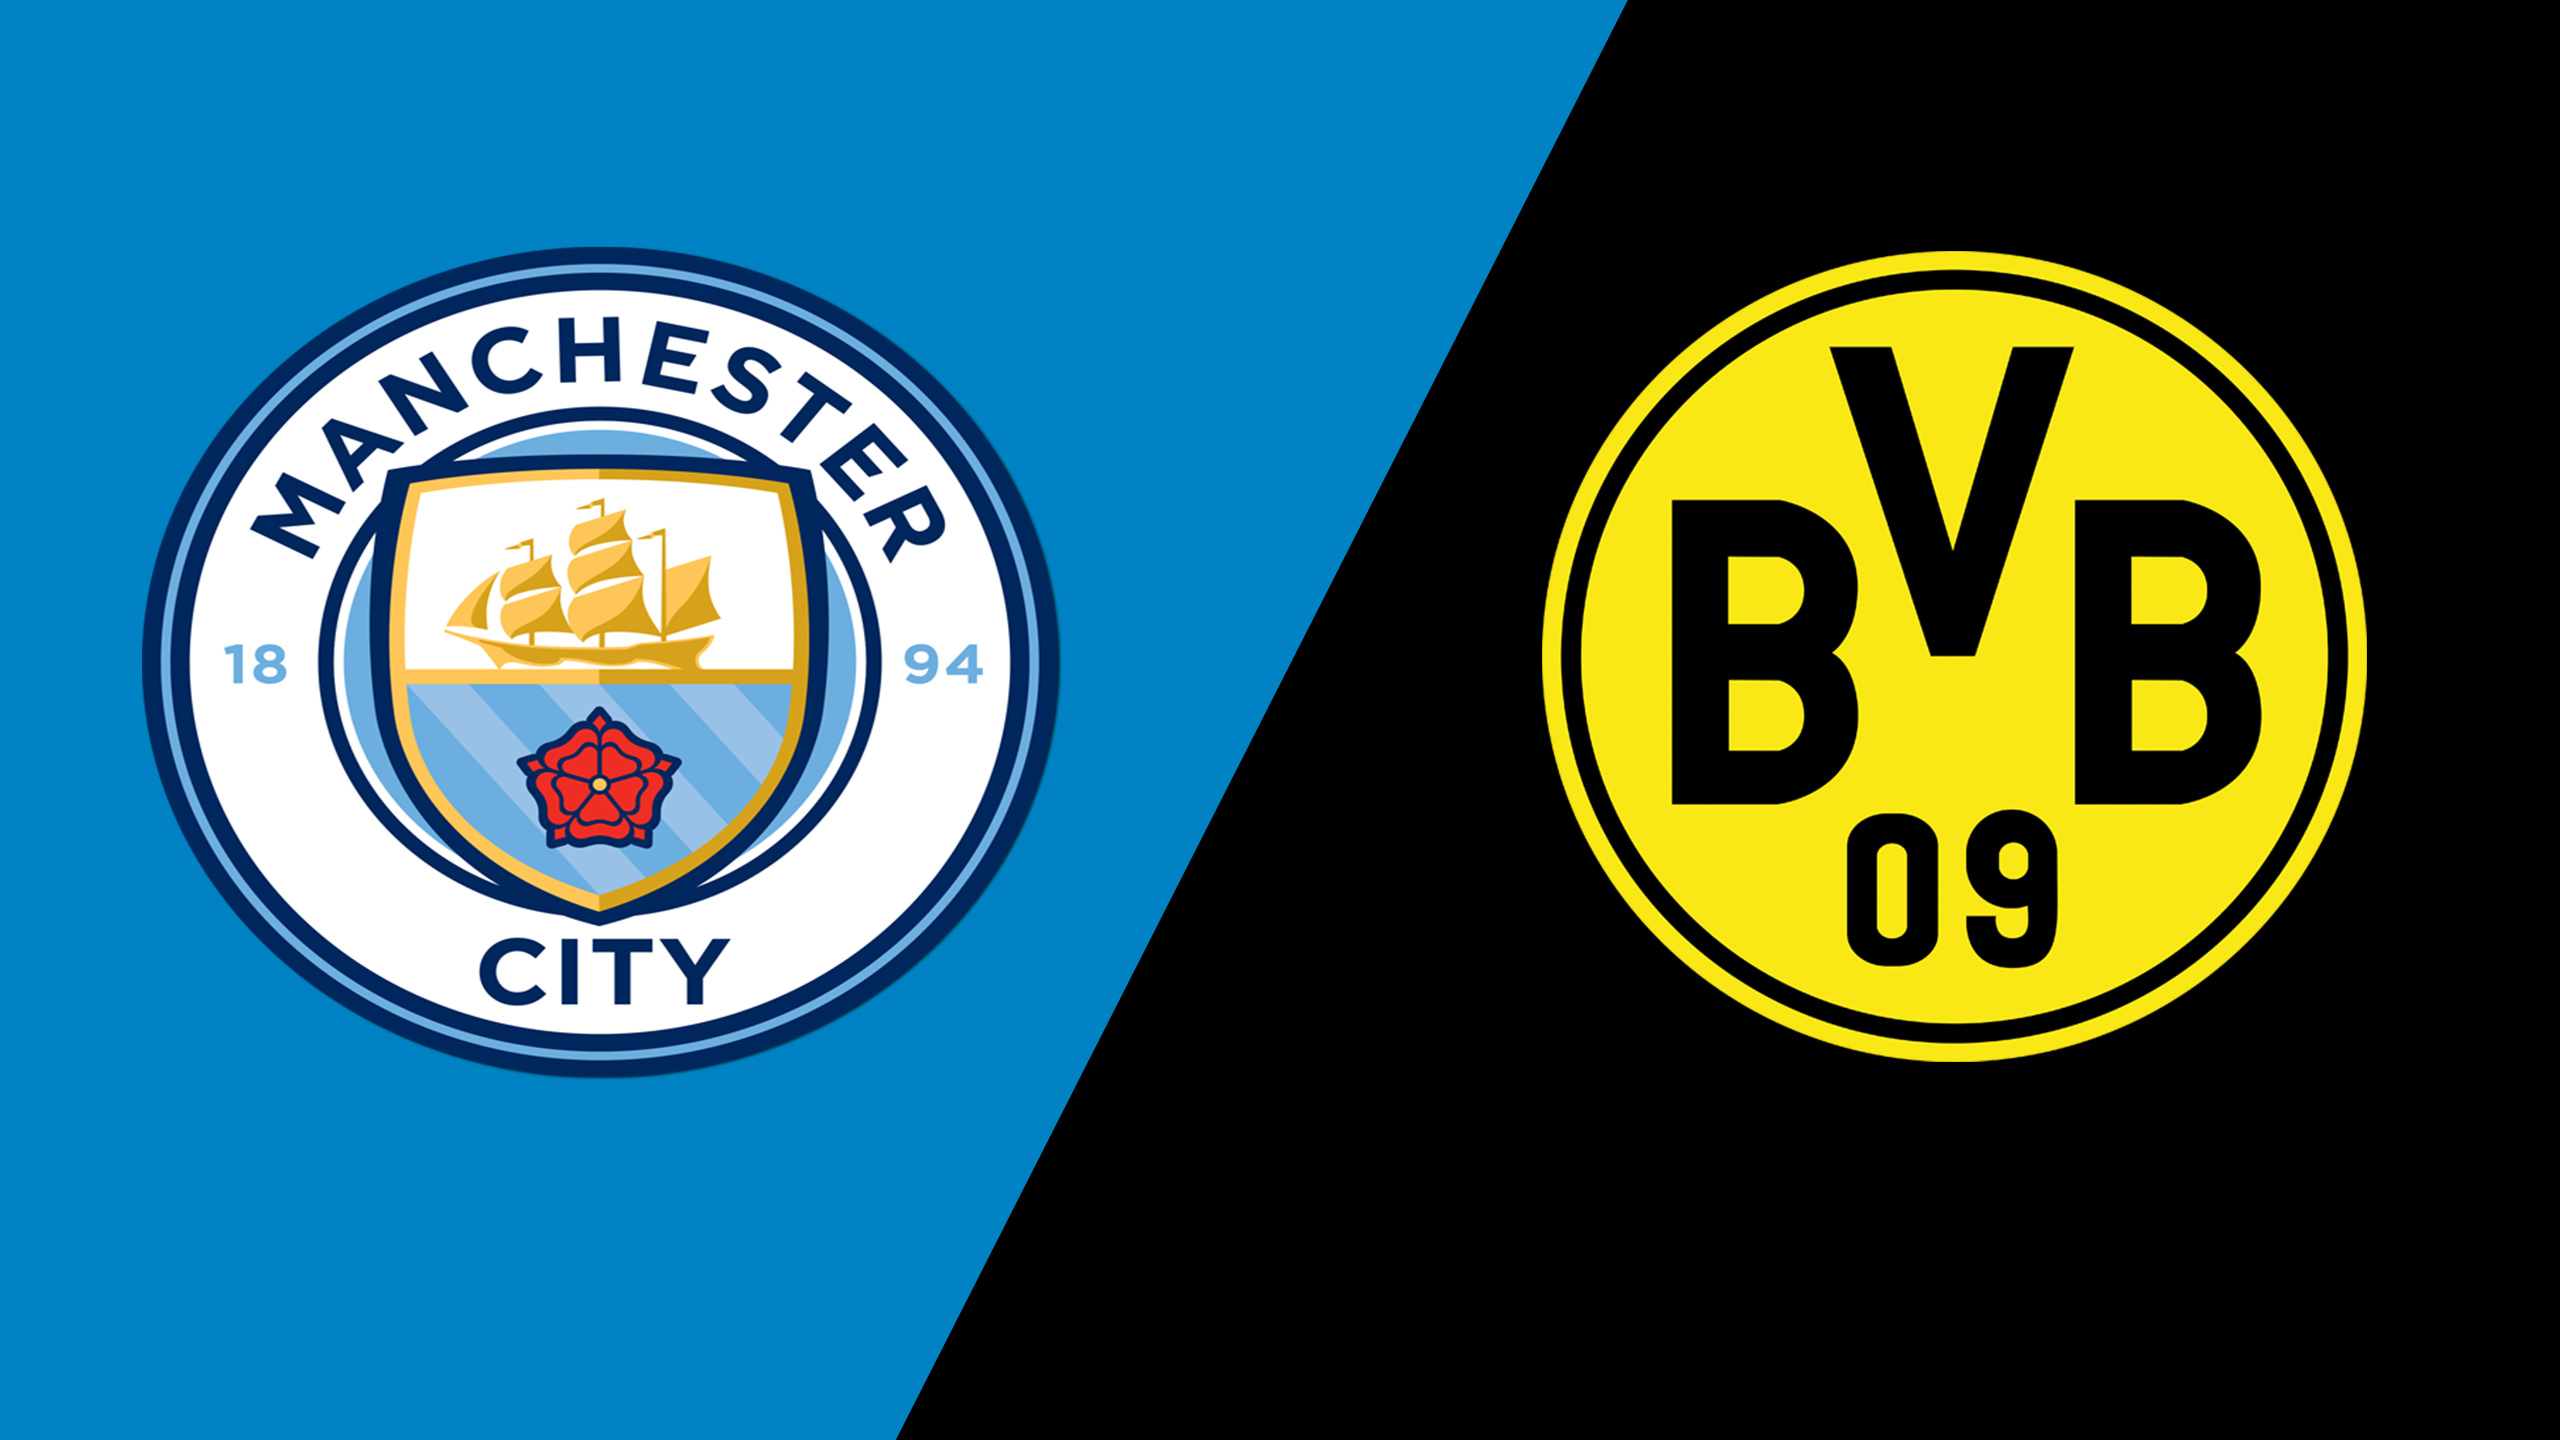 In Spanish - Manchester City vs. Borussia Dortmund (International Champions Cup) (re-air)